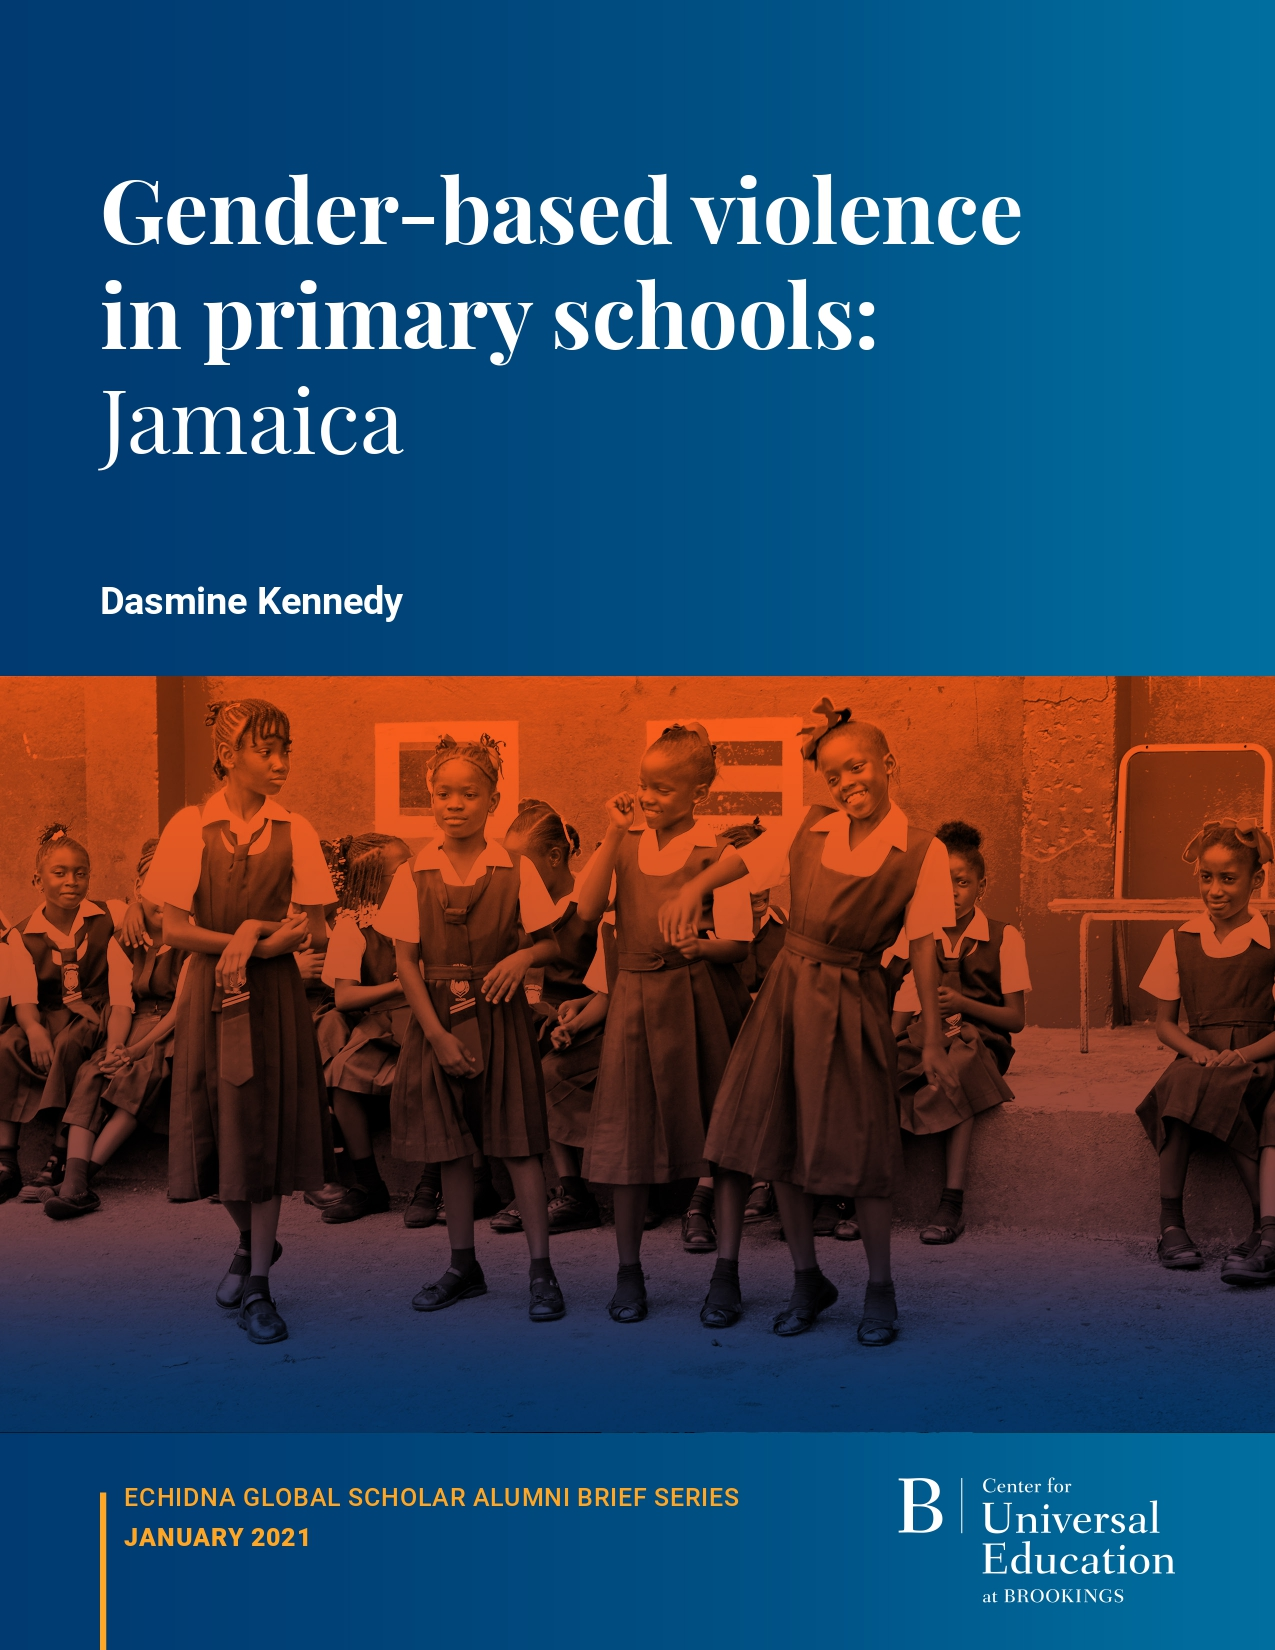 Gender-based violence in primary schools: Jamaica